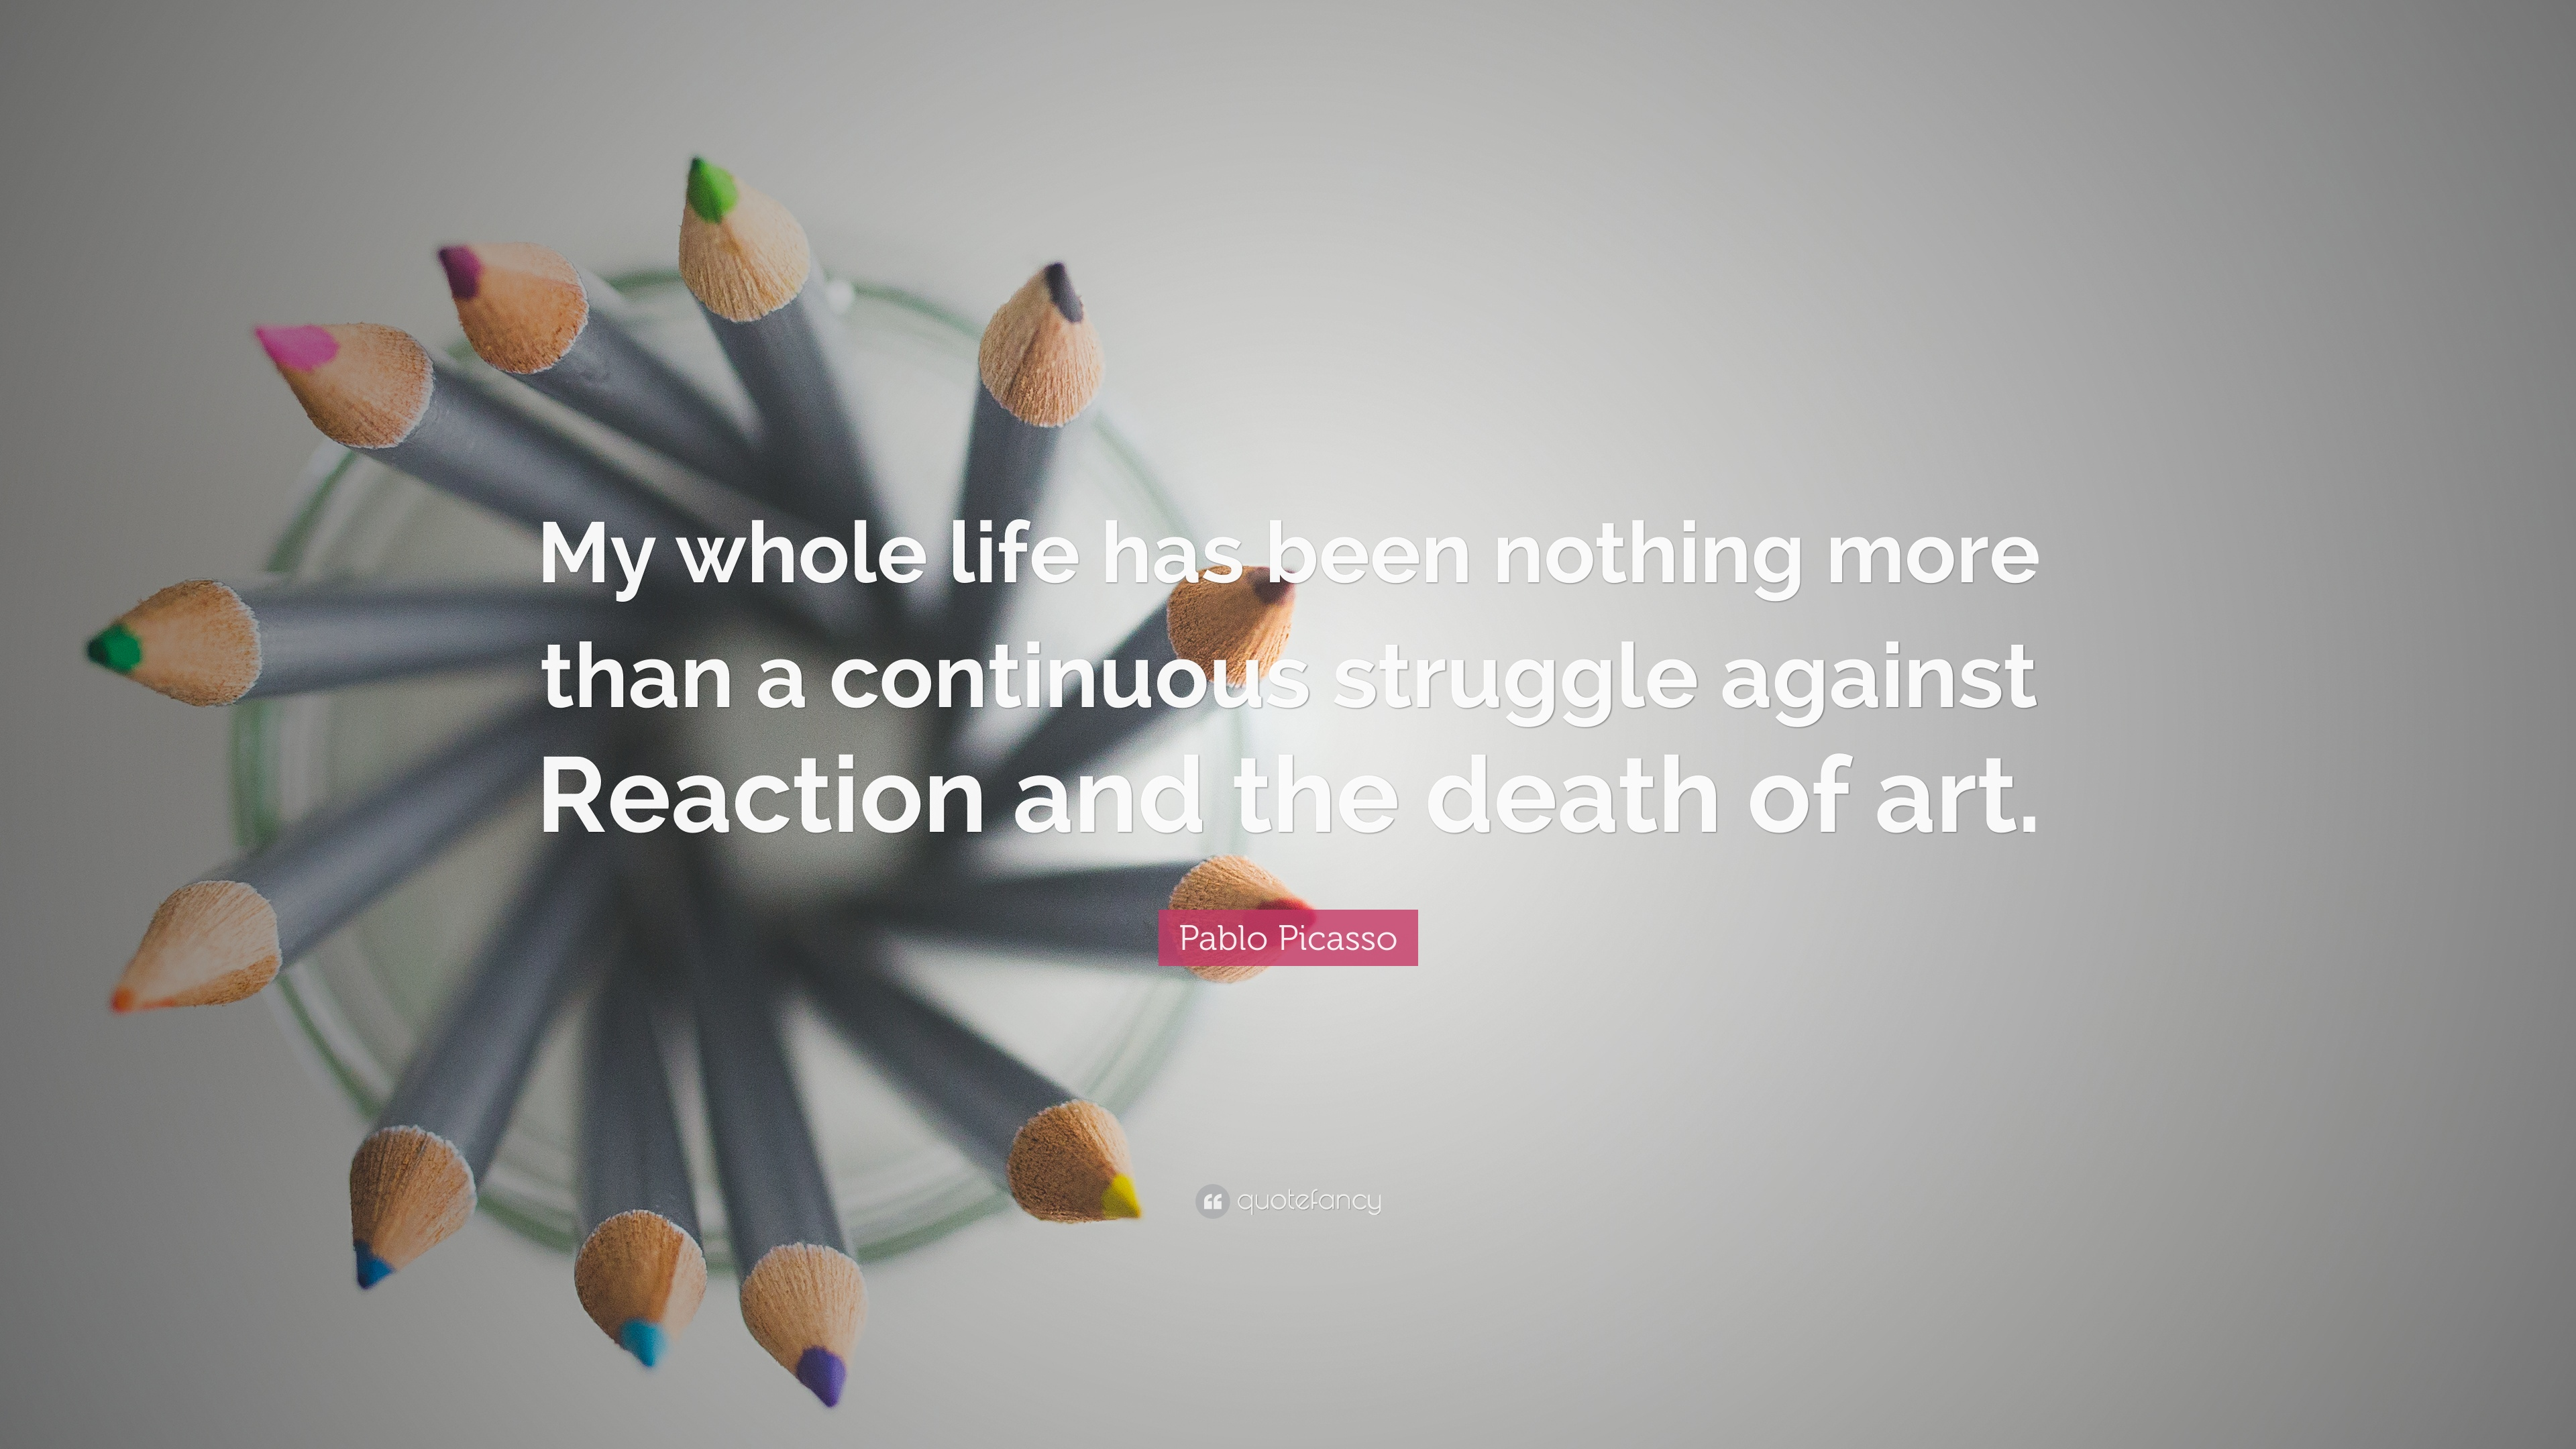 Pablo Picasso Quote: U201cMy Whole Life Has Been Nothing More Than A Continuous  Struggle